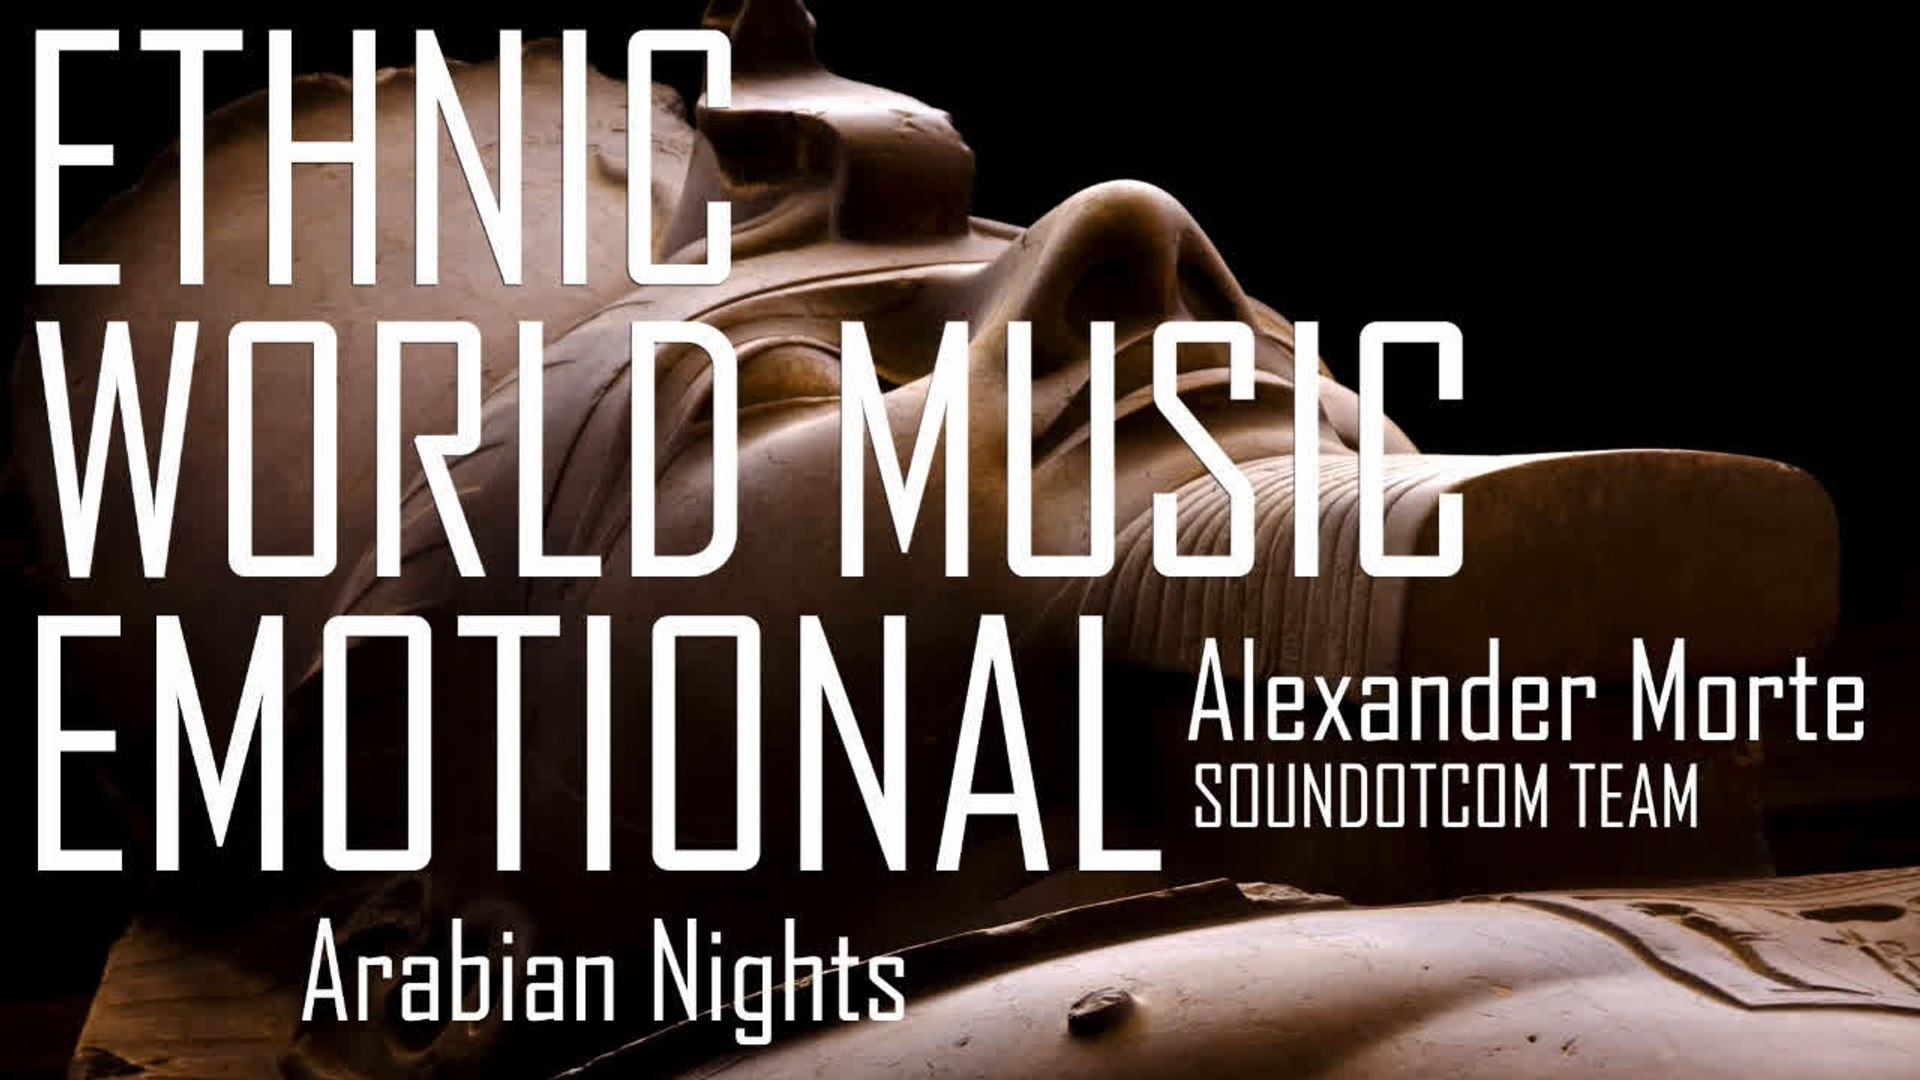 Royalty Free Music DOWNLOAD - World Music Ethnic Documentary | Arabian Nights